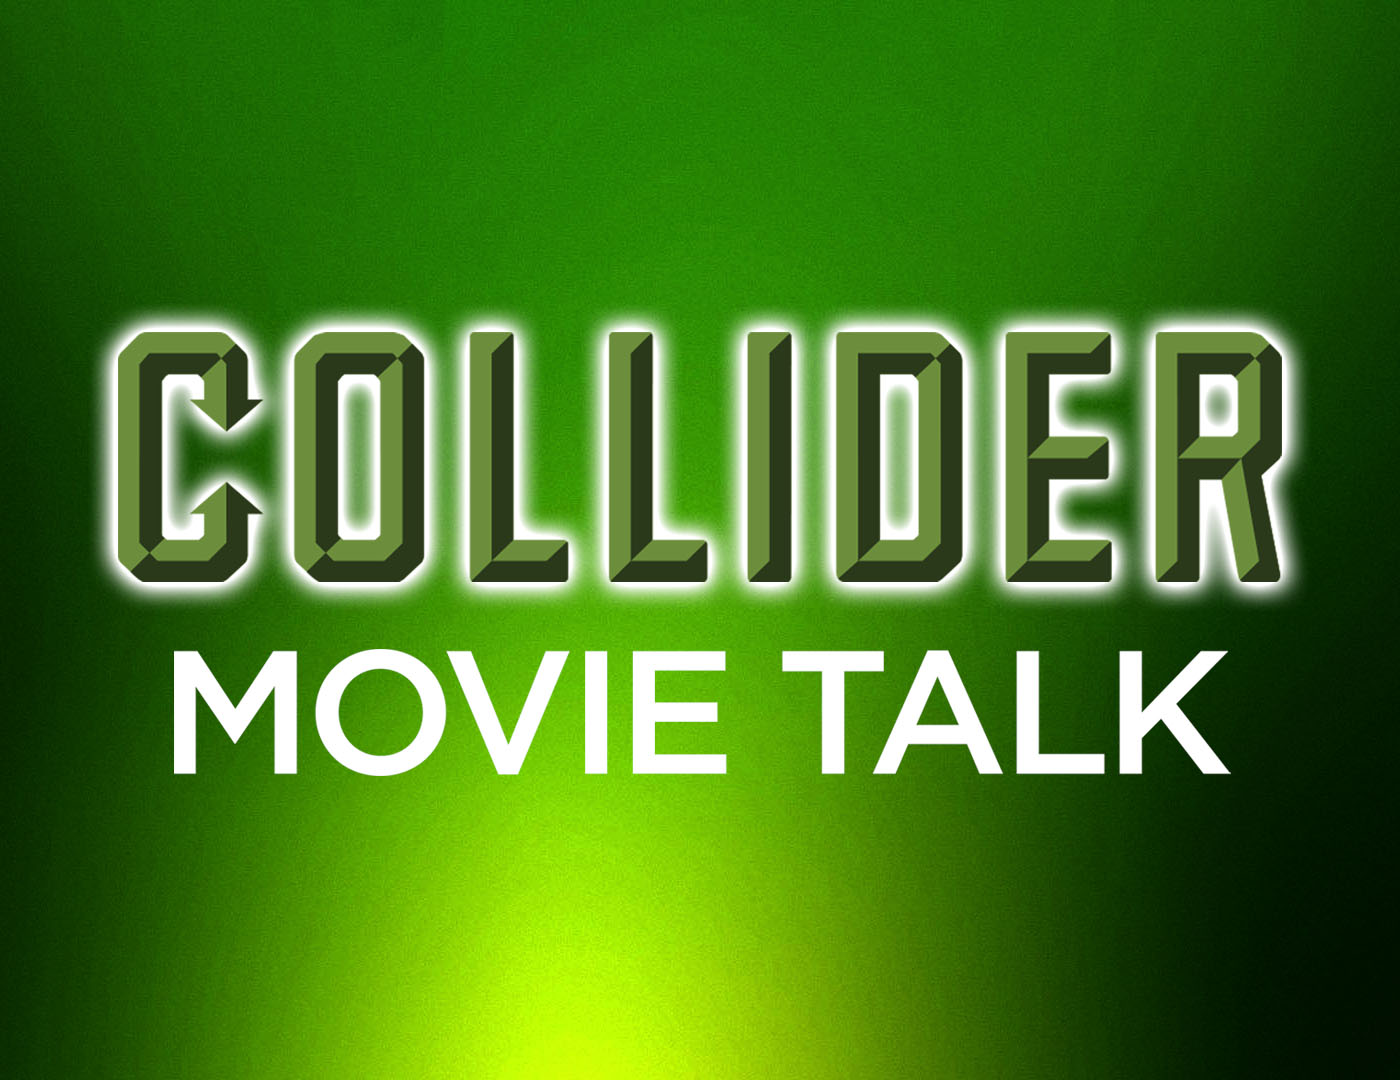 Collider Movie Talk - The Best Superhero Movie Of 2016 Will Be...